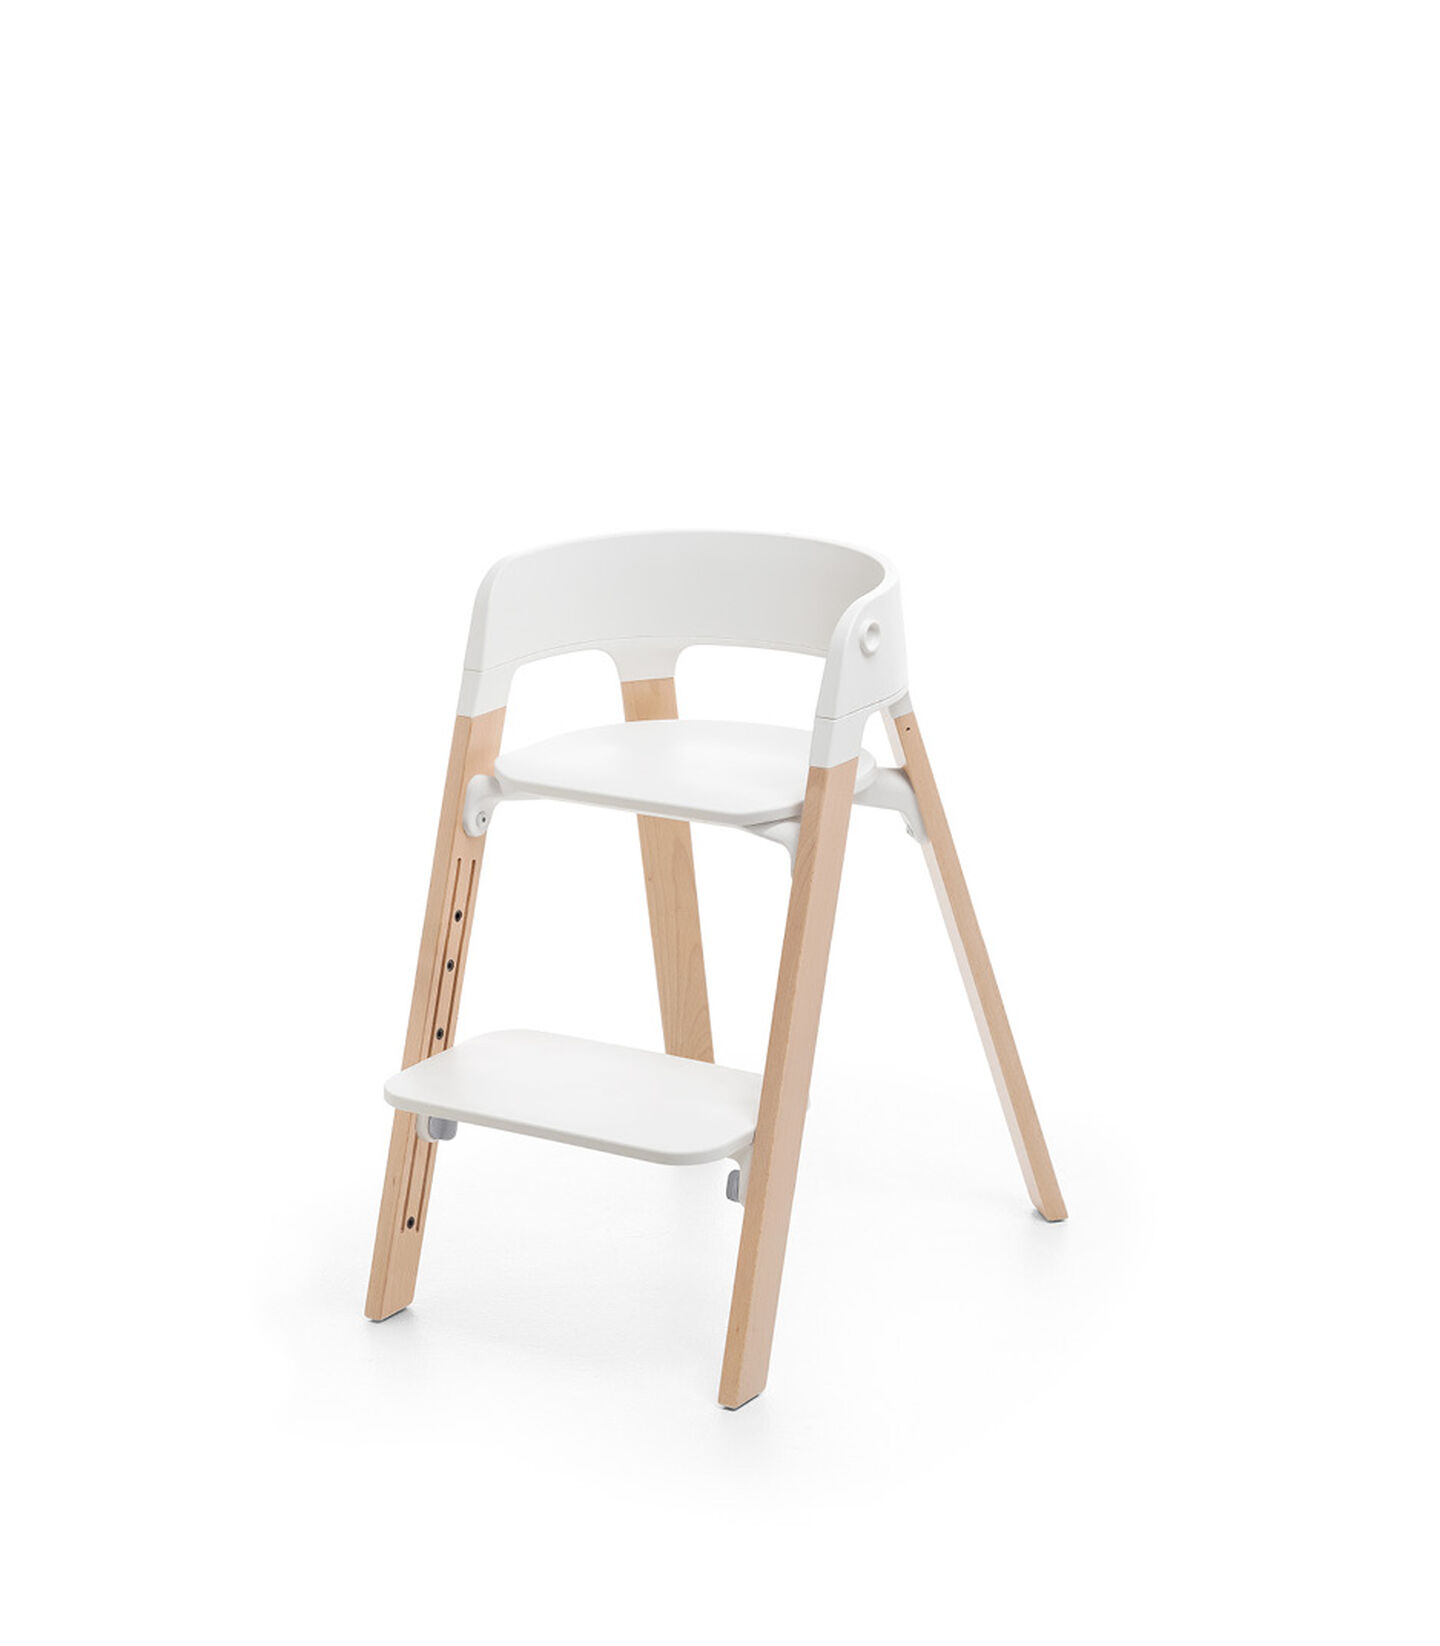 Stokke® Steps™ Chair, Beech Natural with White Seat. Footrest low. view 2